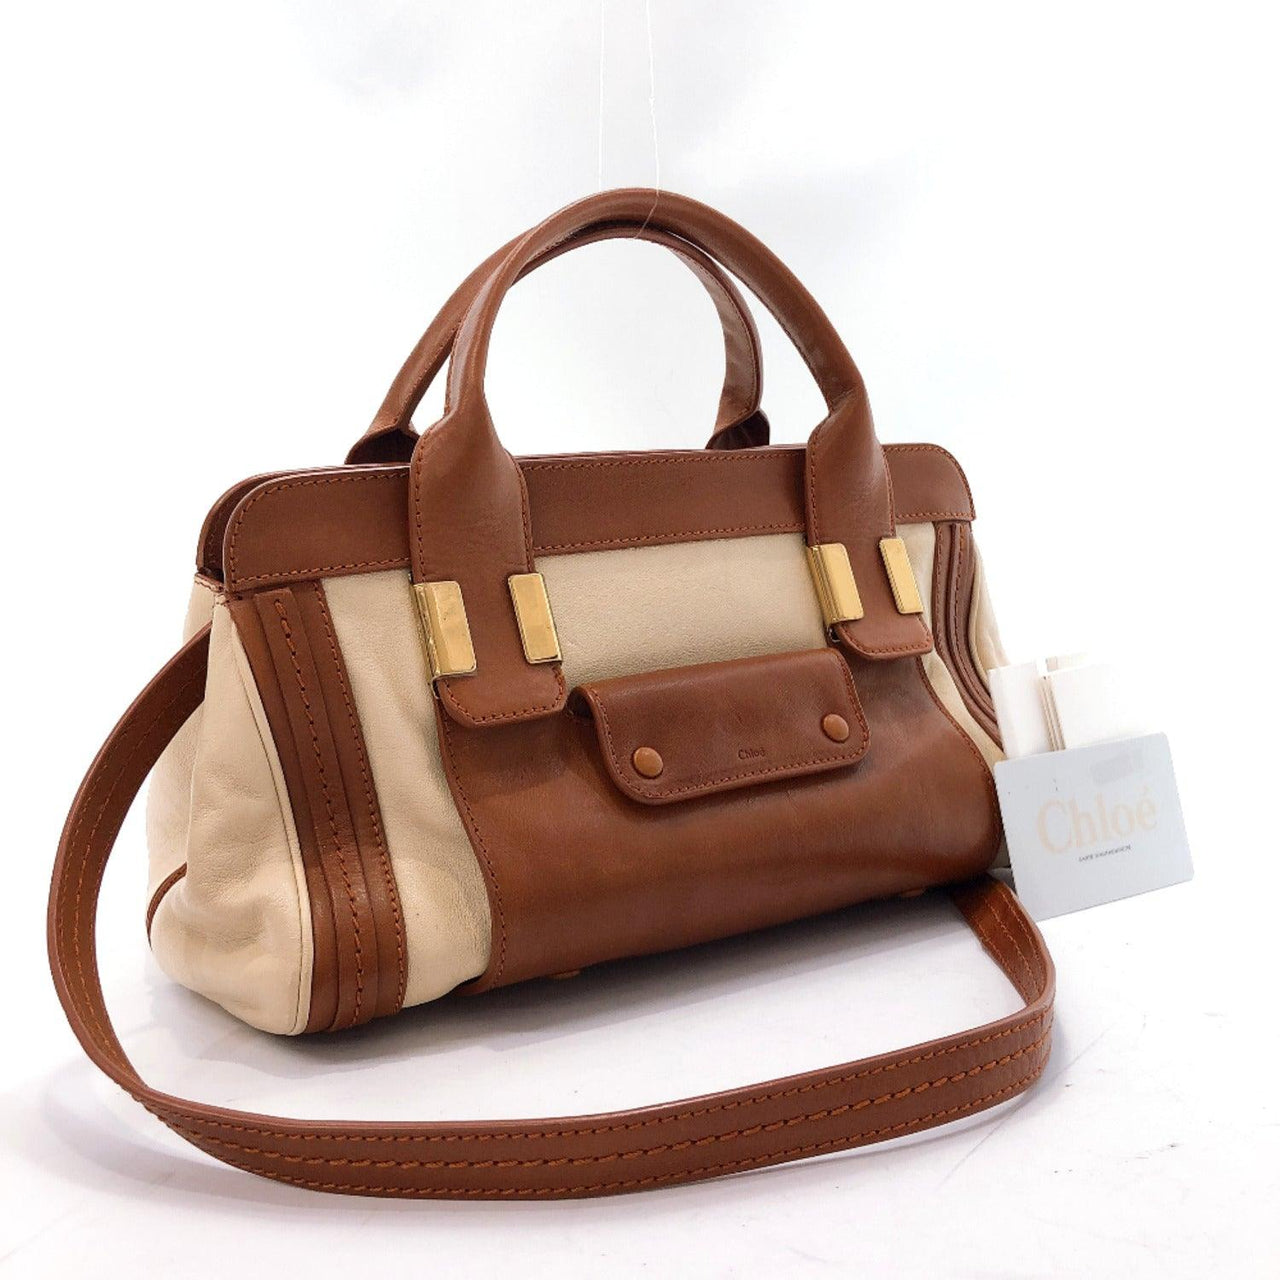 Chloe Shoulder Bag Little Alice 2way leather beige Brown Women Used